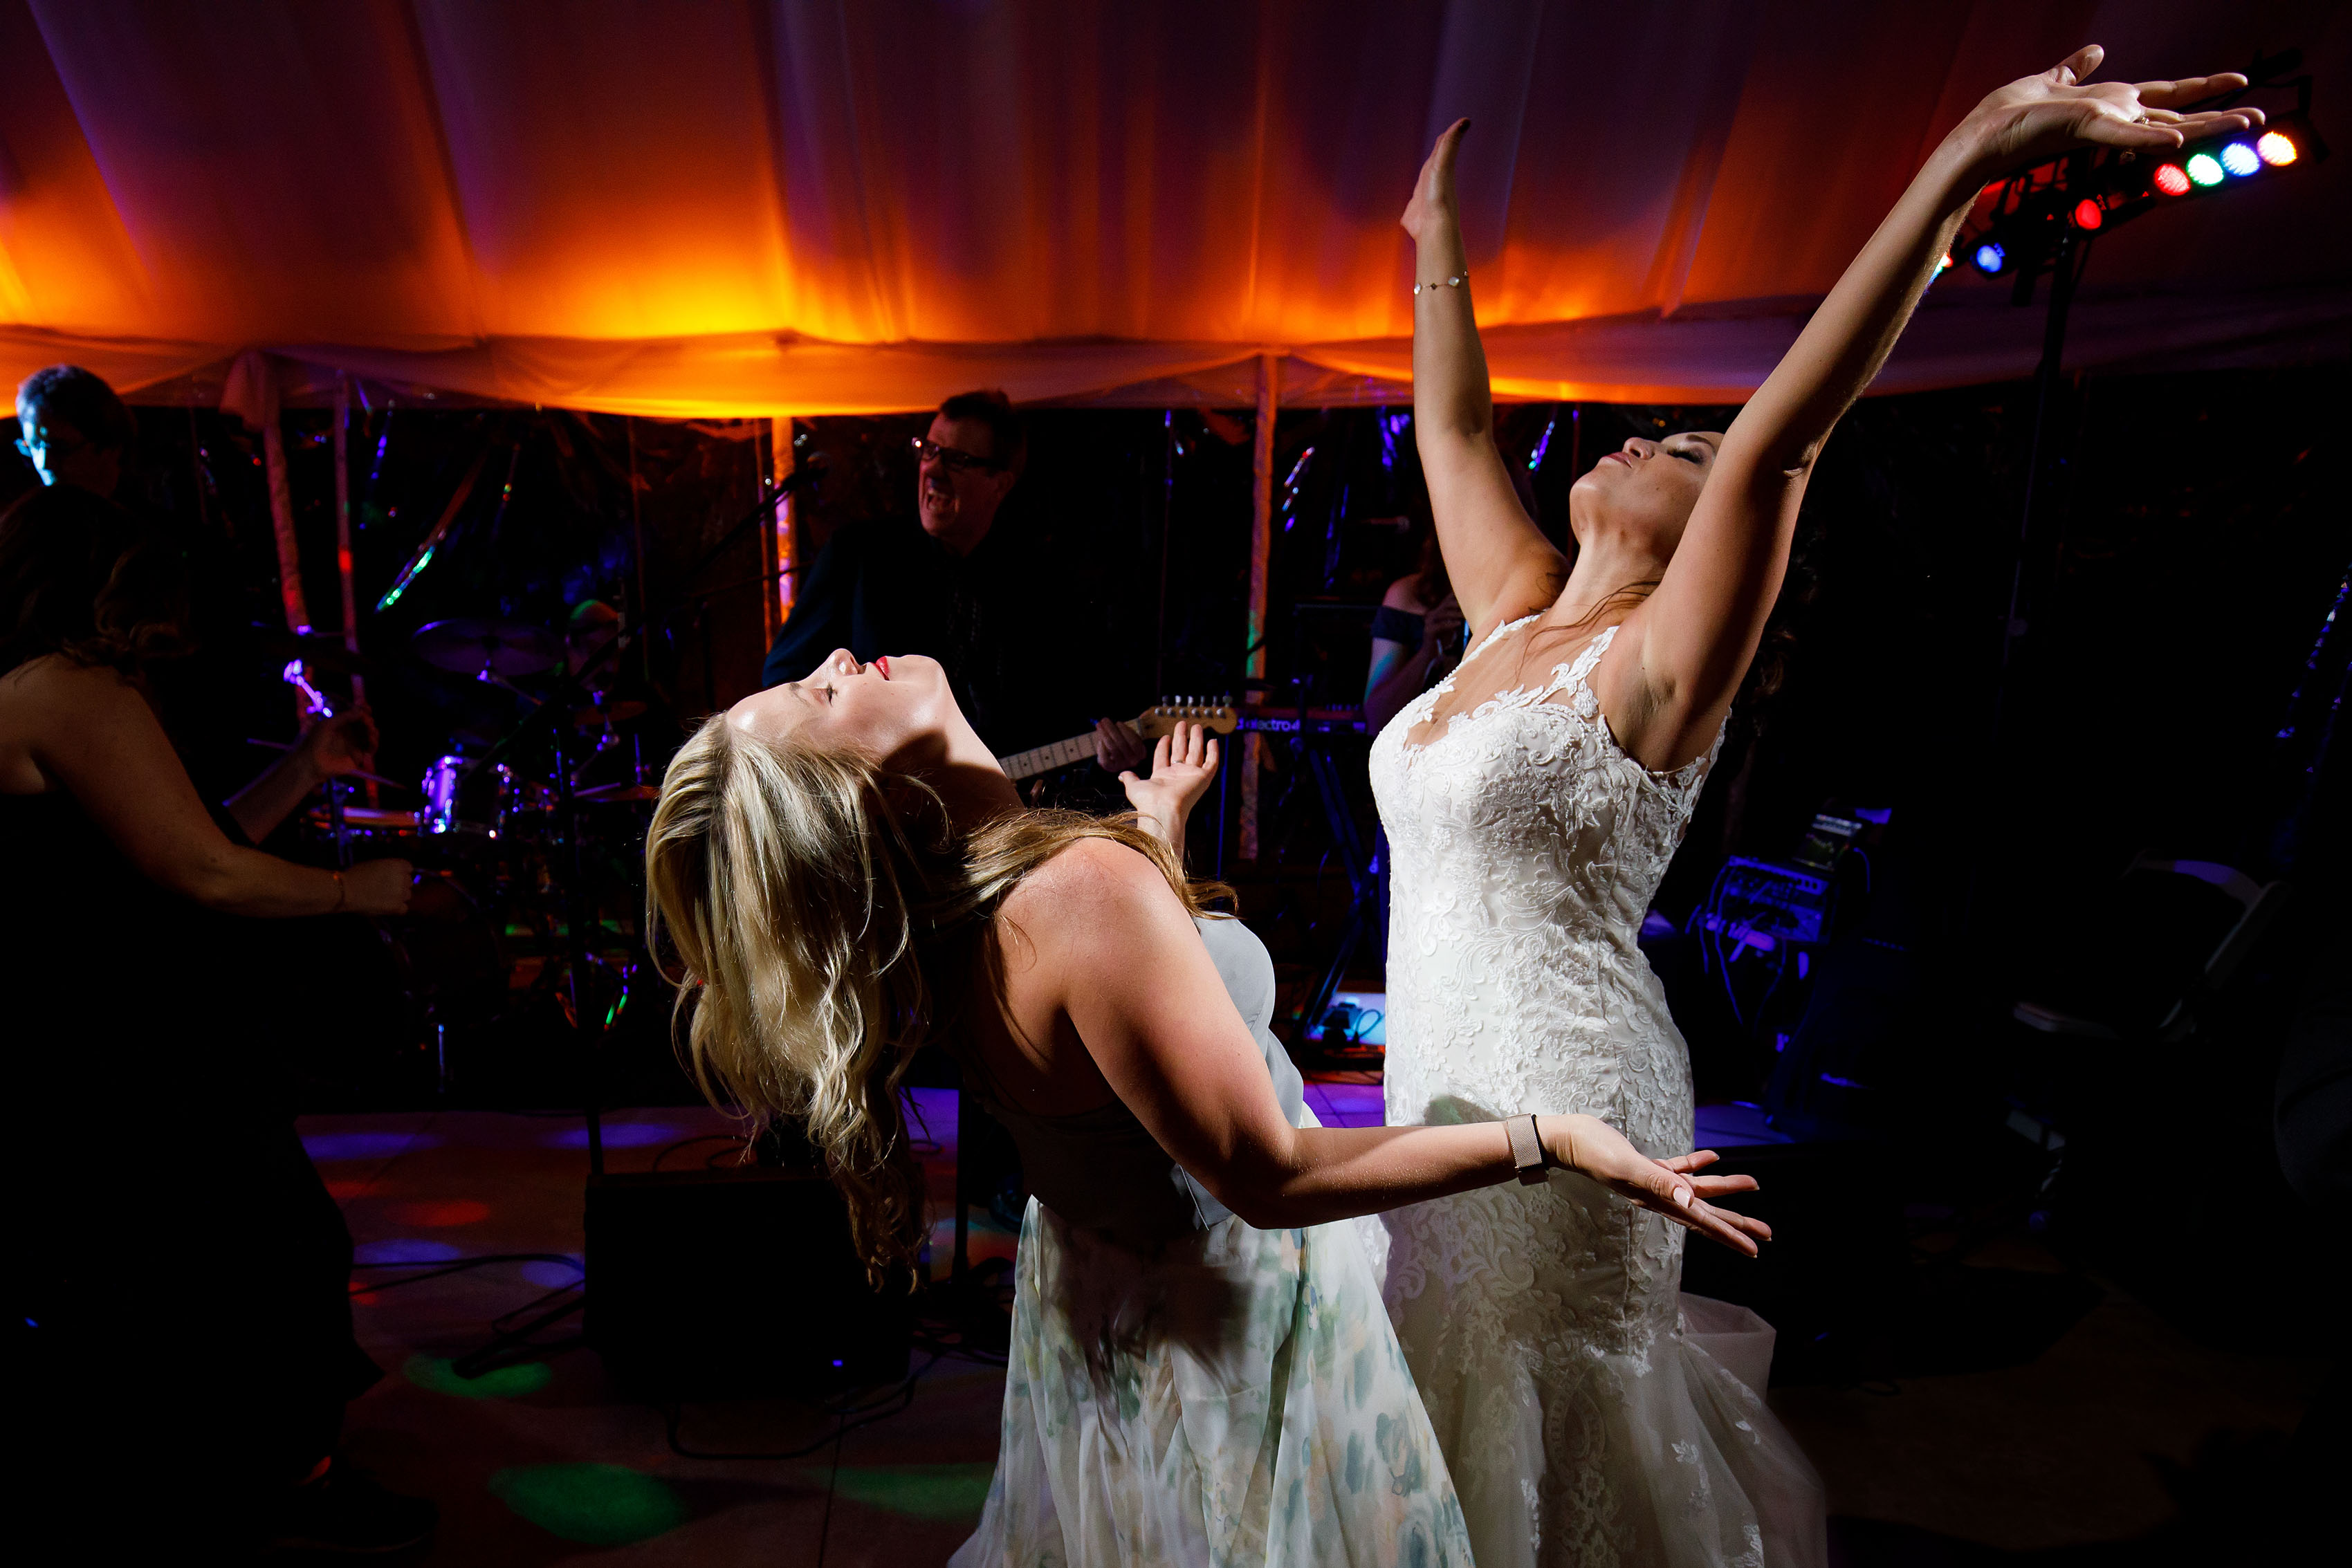 Melissa dances with Cara during the wedding in Sedalia